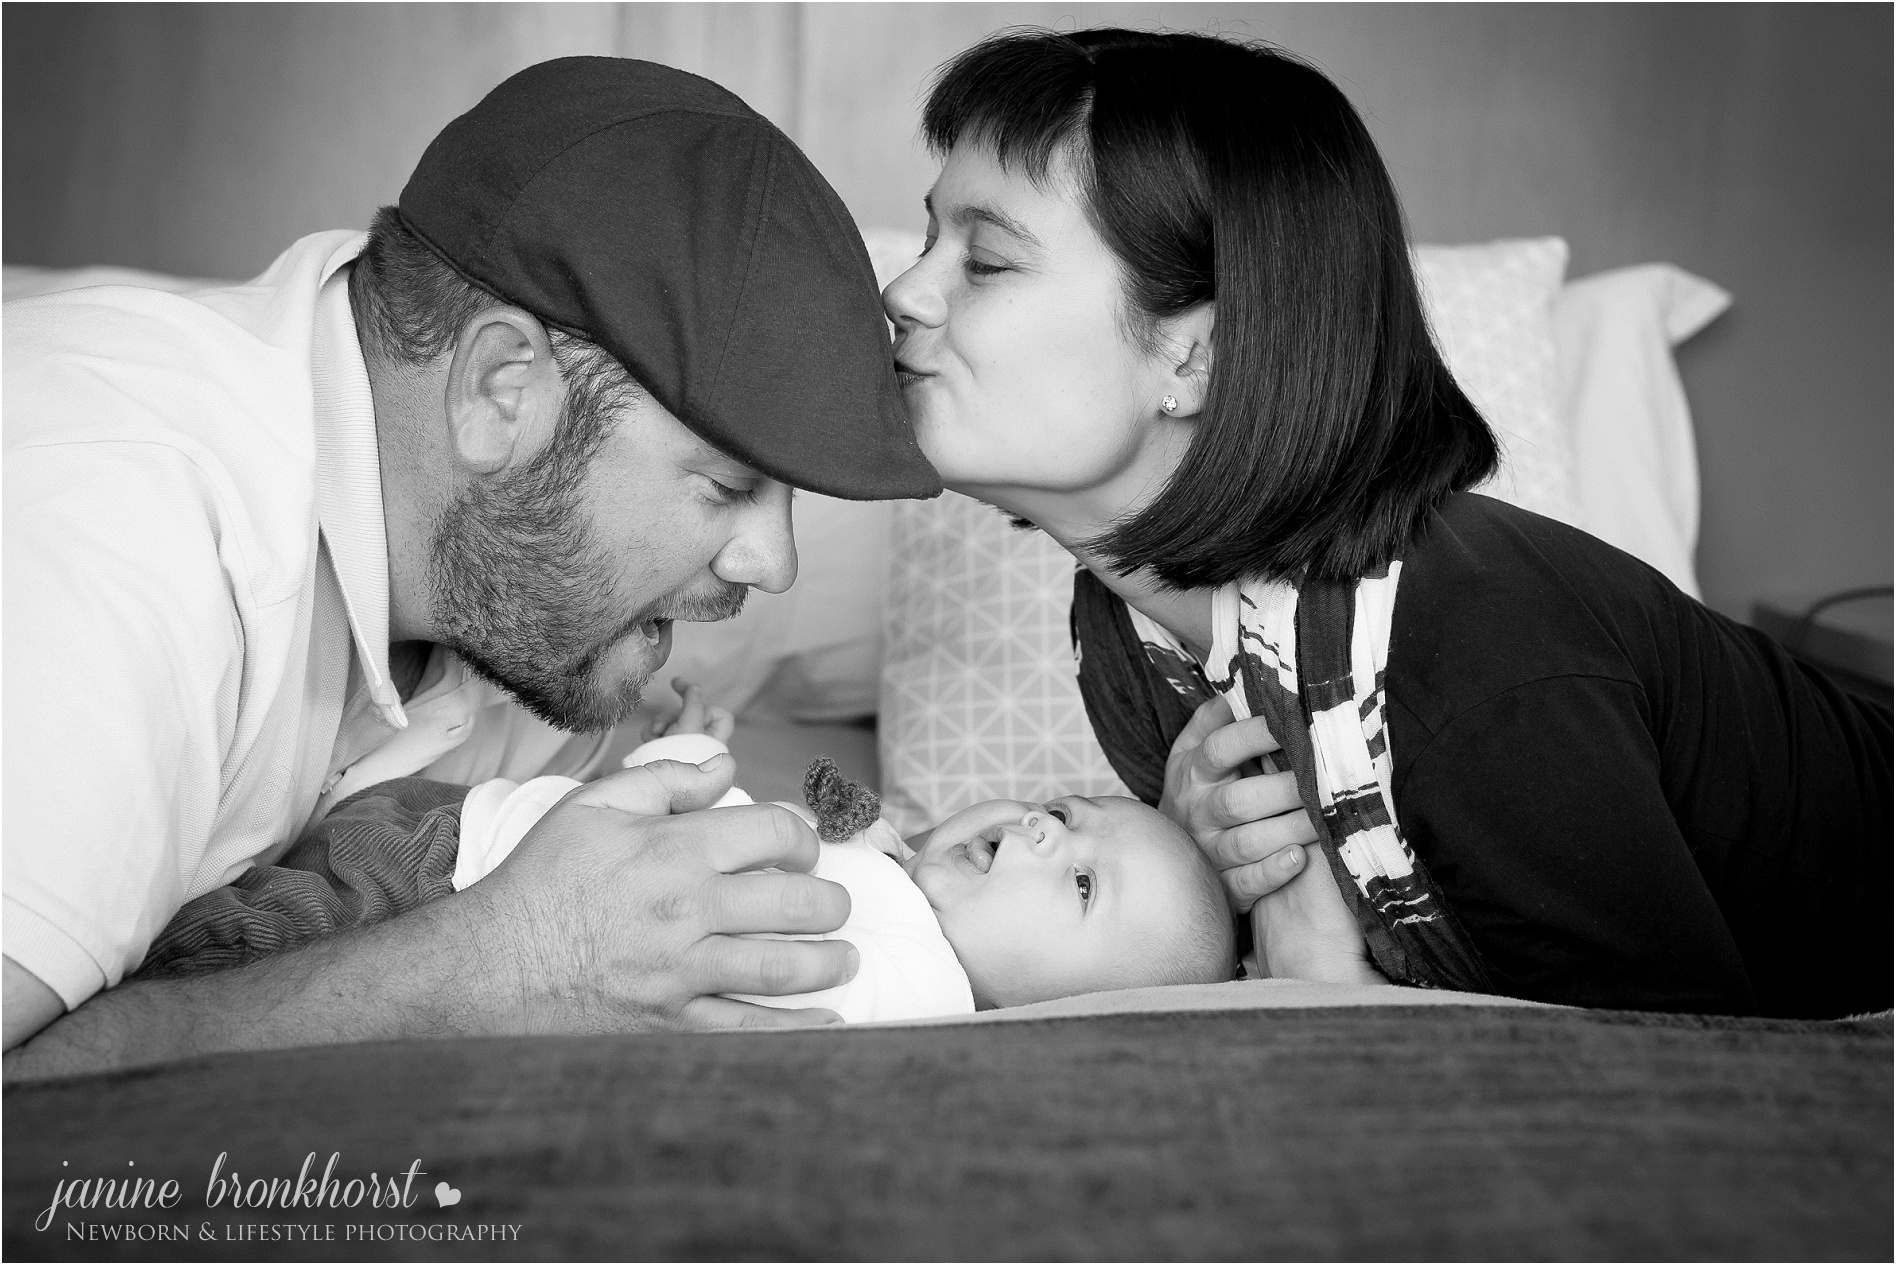 cape_town_newborn_photography_4602